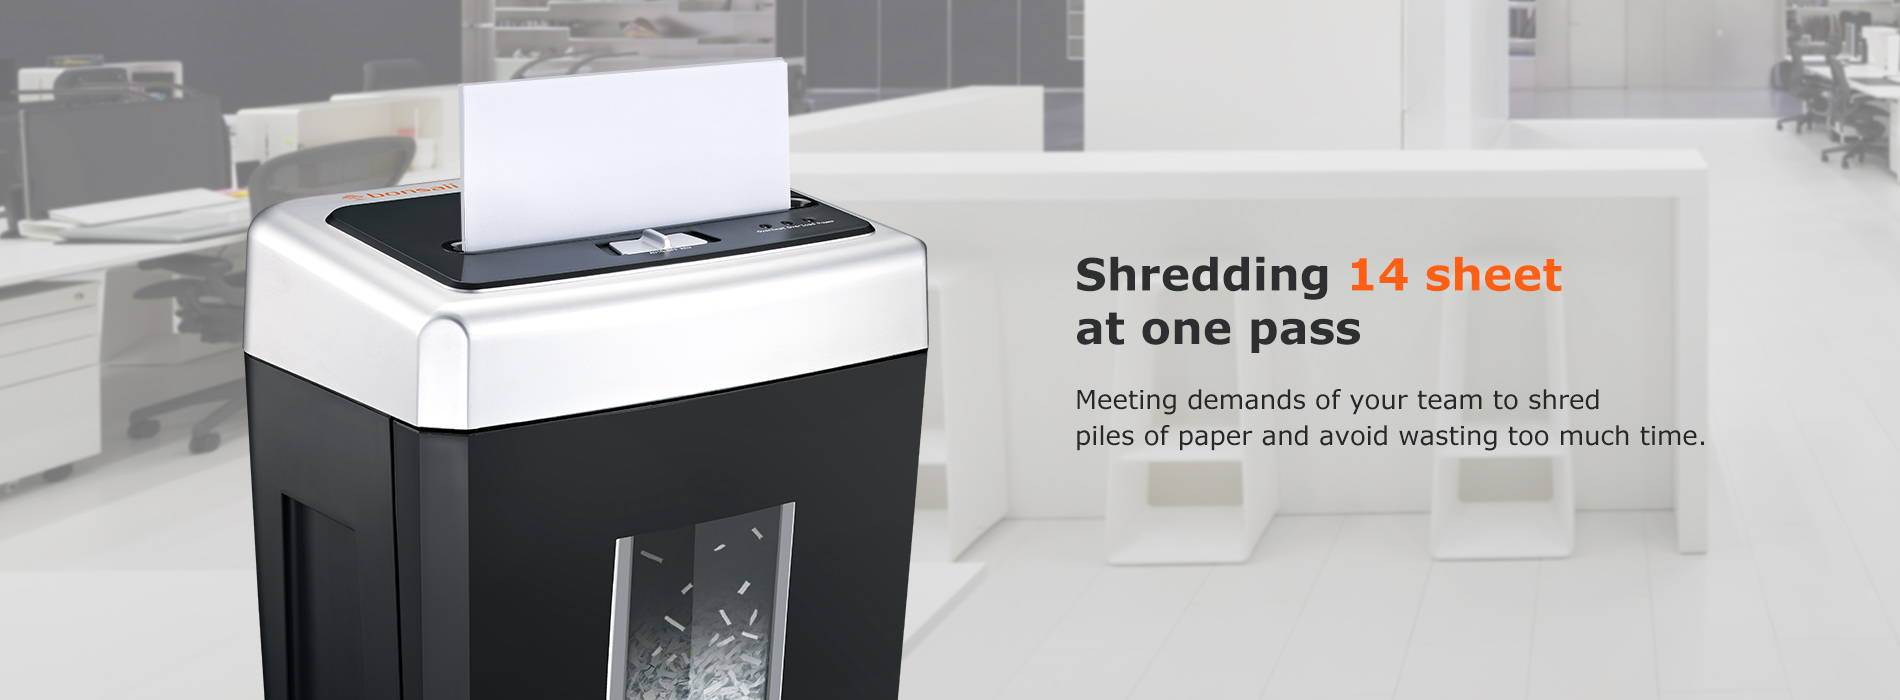 Shredding 14 sheet at one pass Meeting demands of your team to shred piles of paper and avoid wasting too much time.